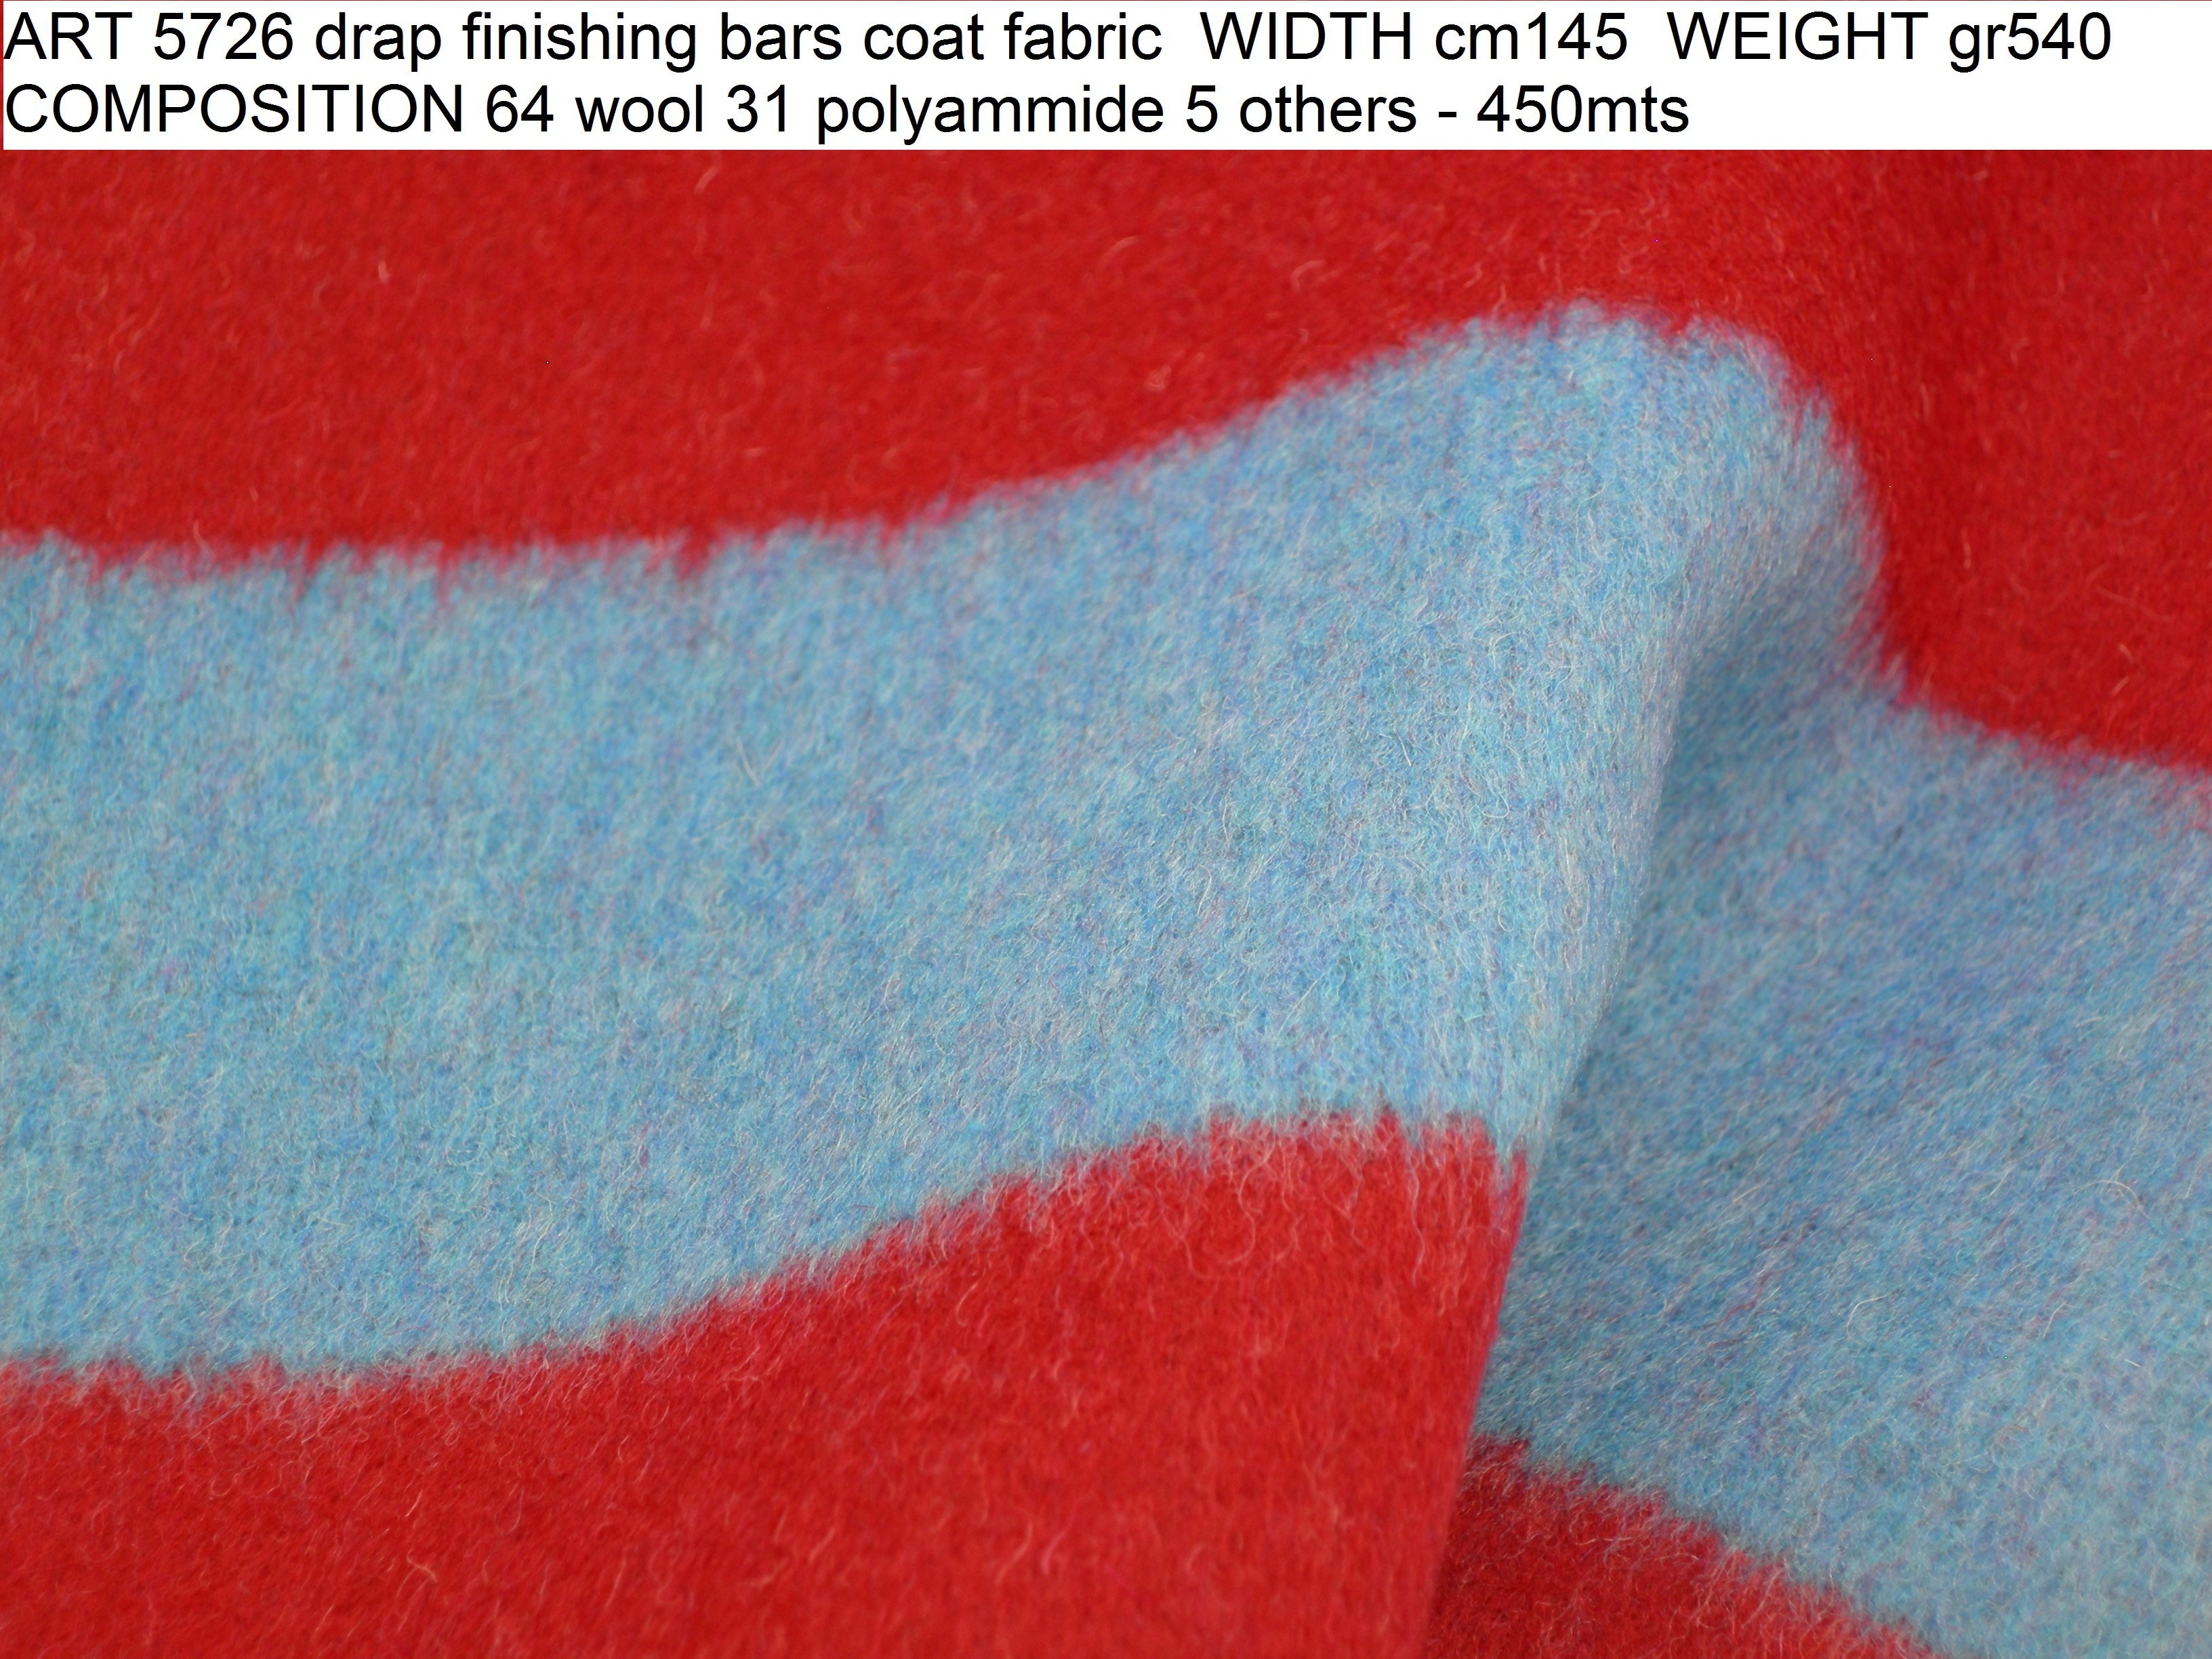 ART 5726 drap finishing bars coat fabric WIDTH cm145 WEIGHT gr540 COMPOSITION 64 wool 31 polyammide 5 others - 450mts